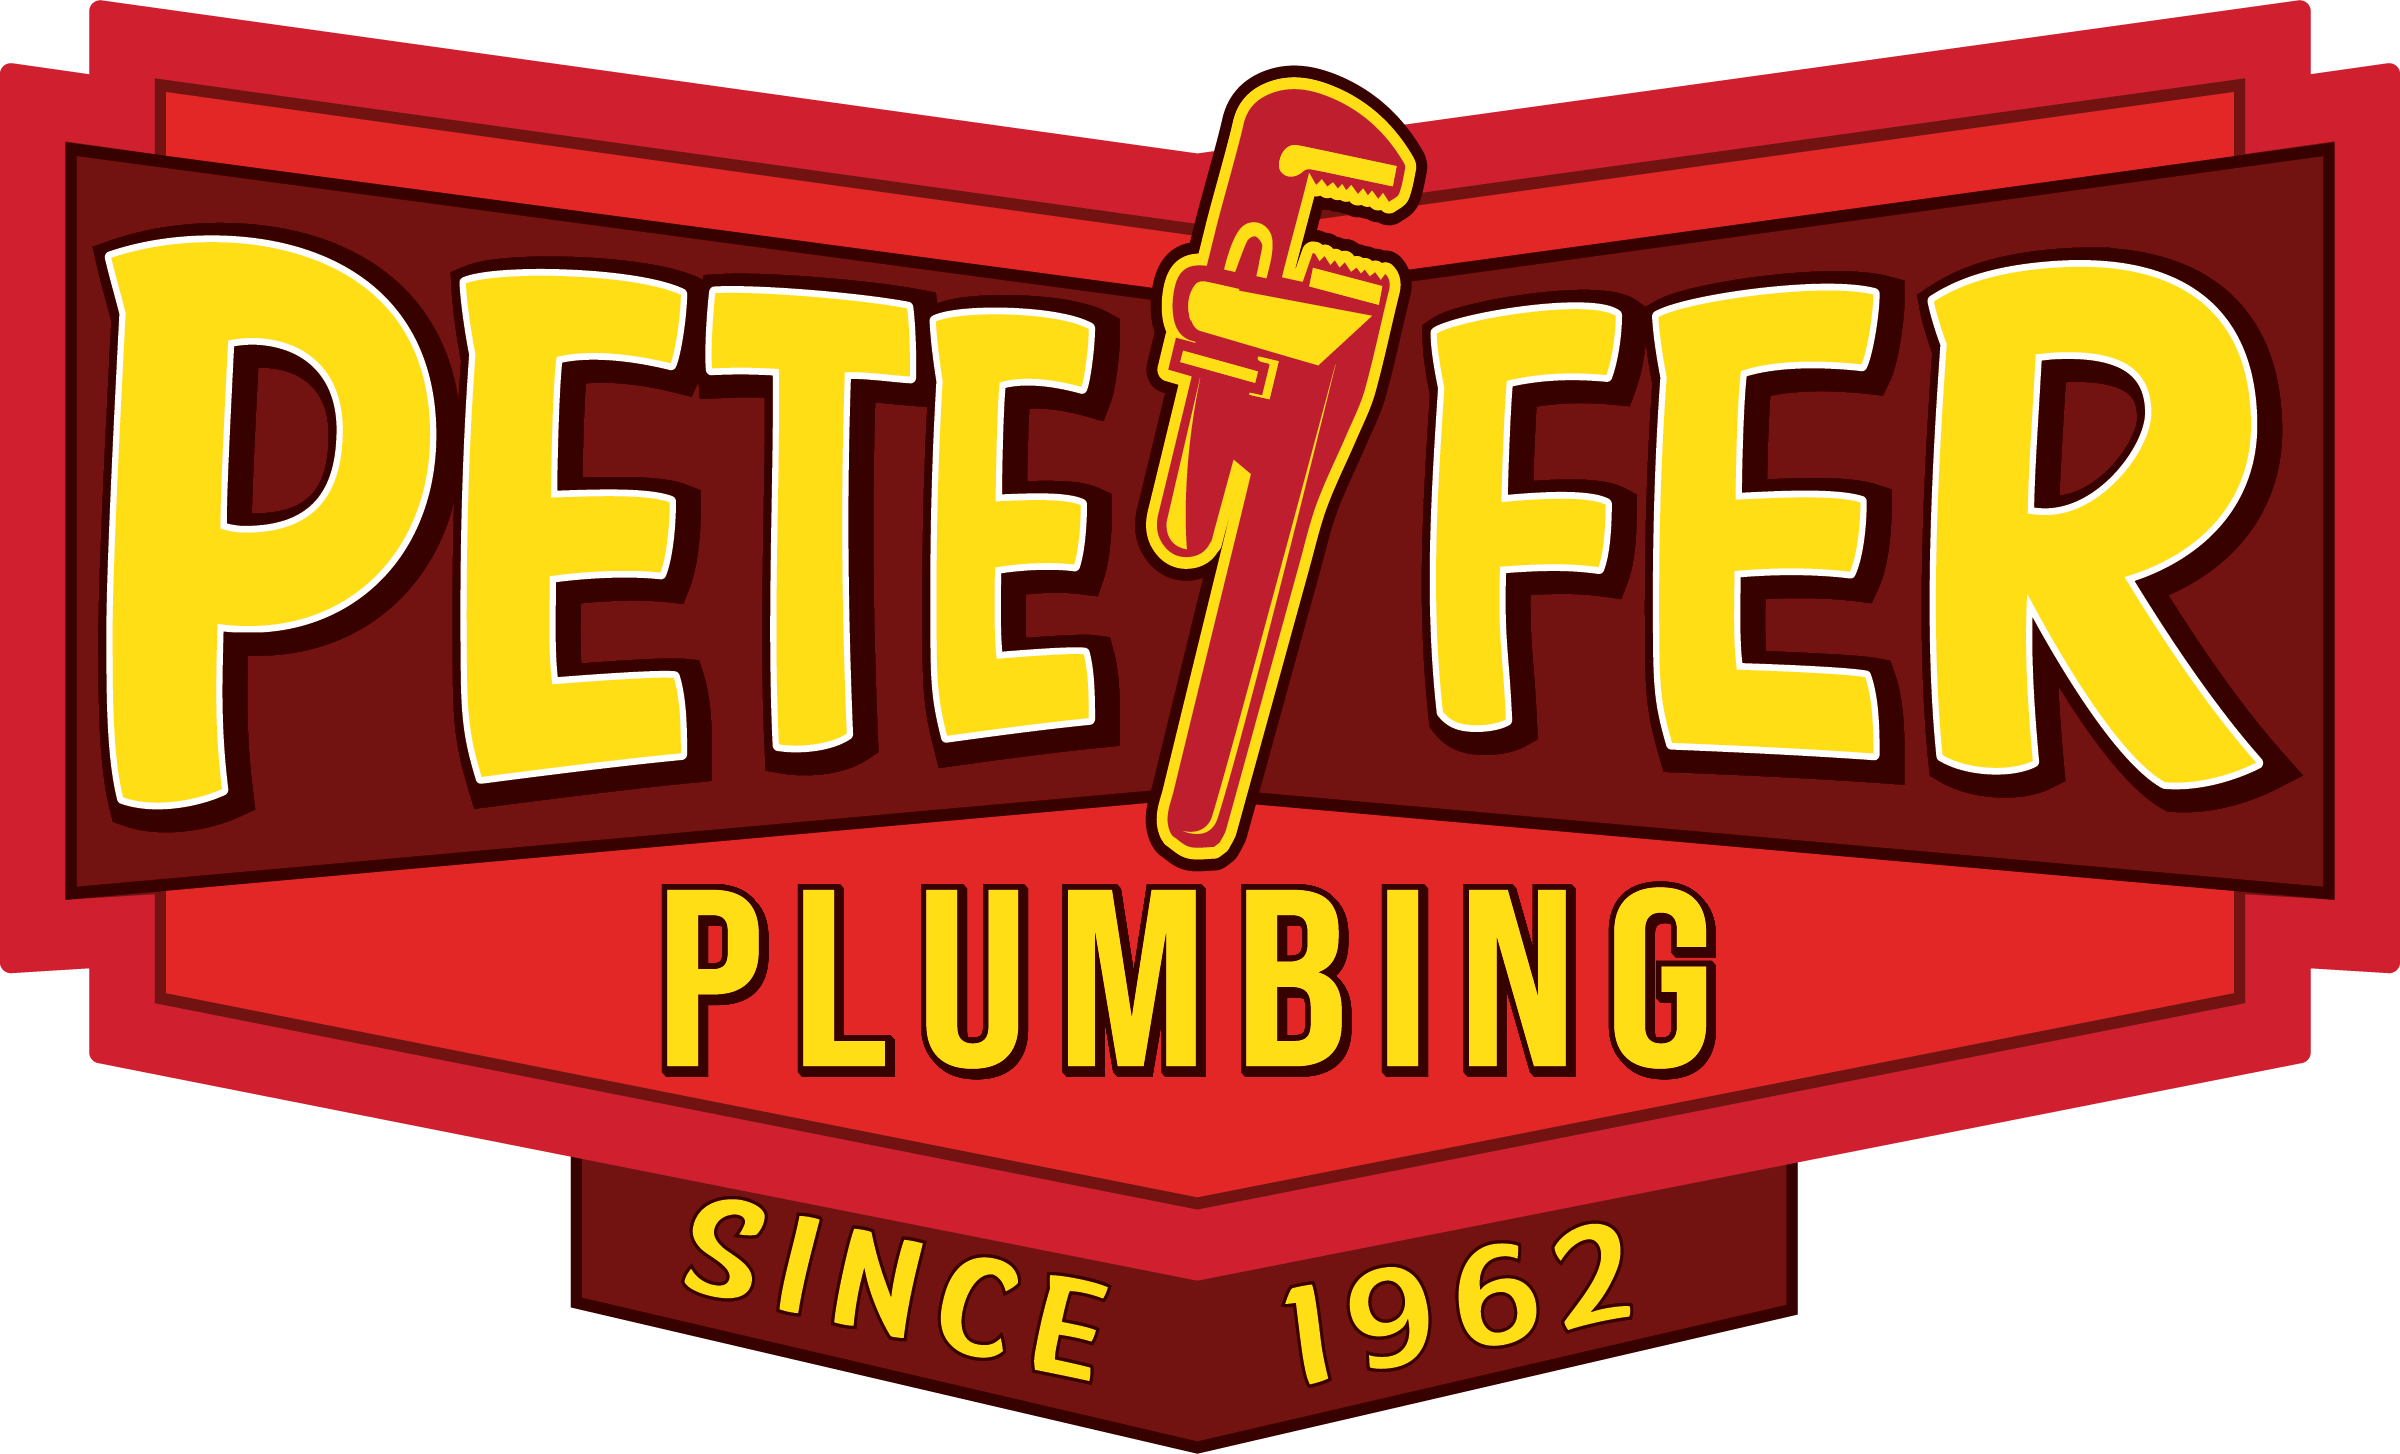 Pete Fer & Son Plumbing and Supply Co.